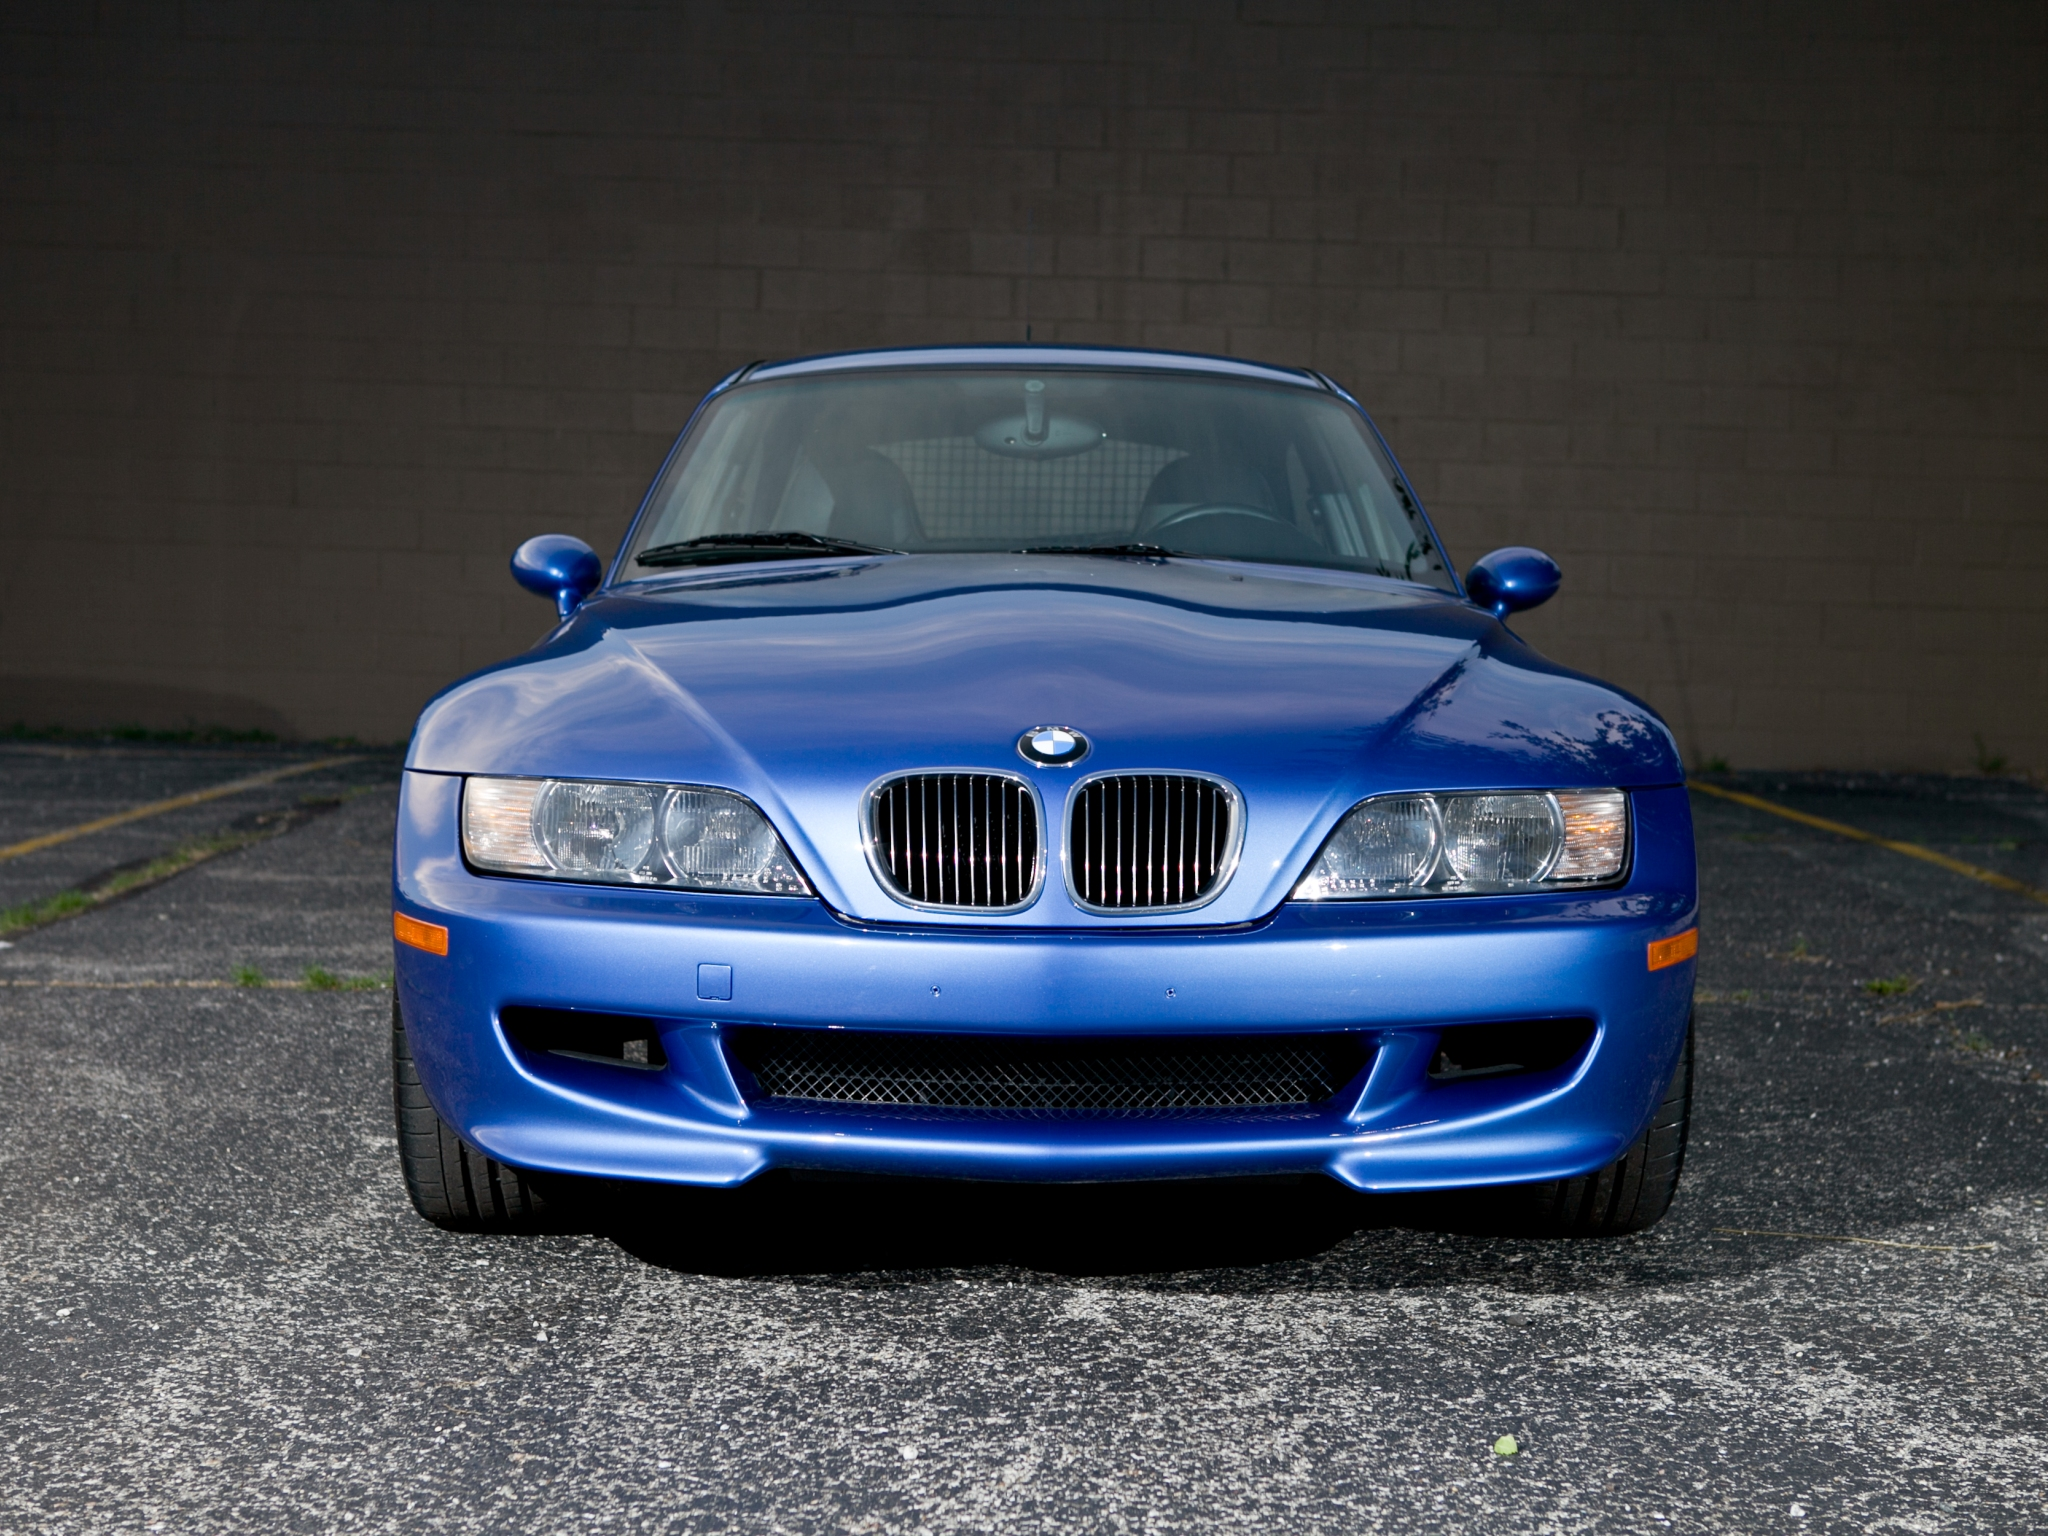 BMW Z3 photos - PhotoGallery with 27 pics| CarsBase.com